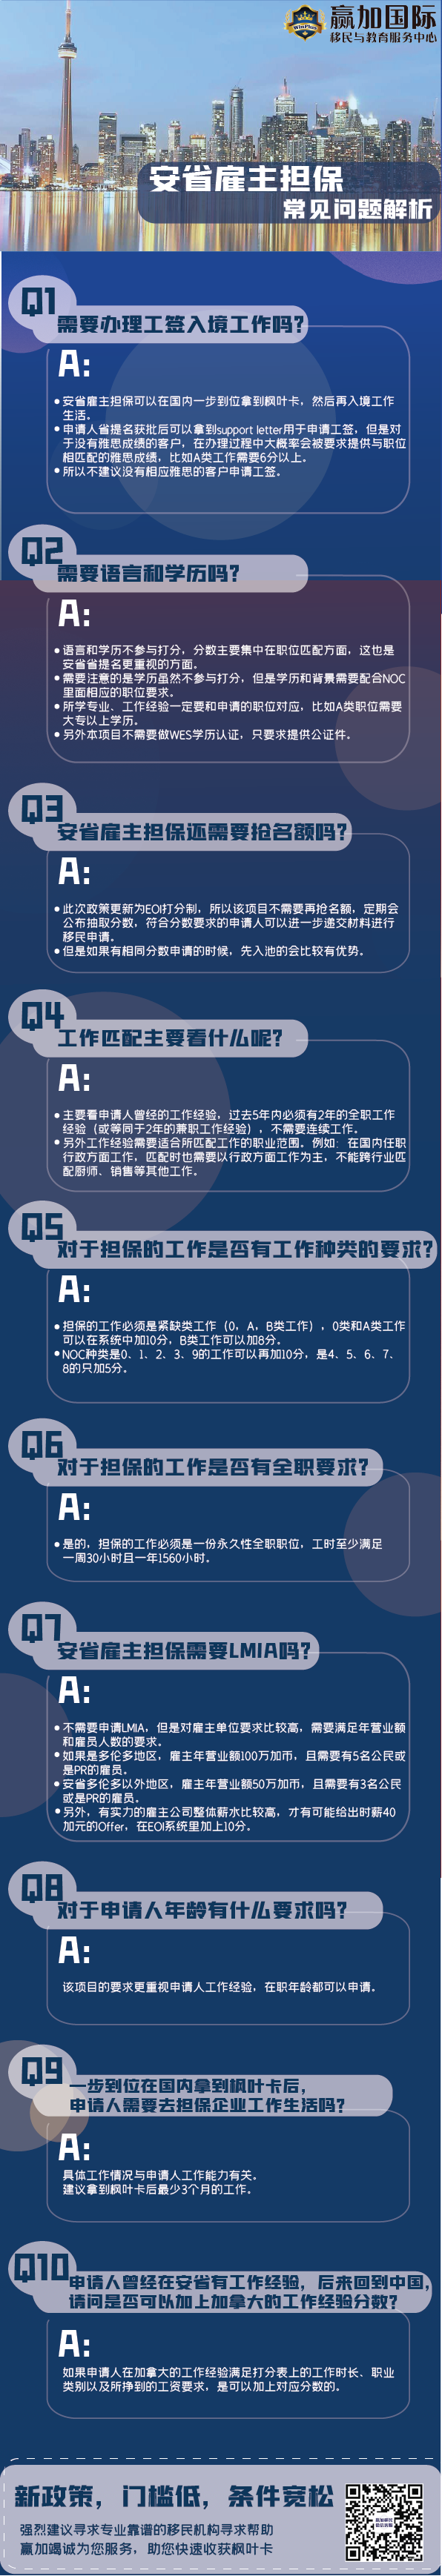 on问答!-01.png